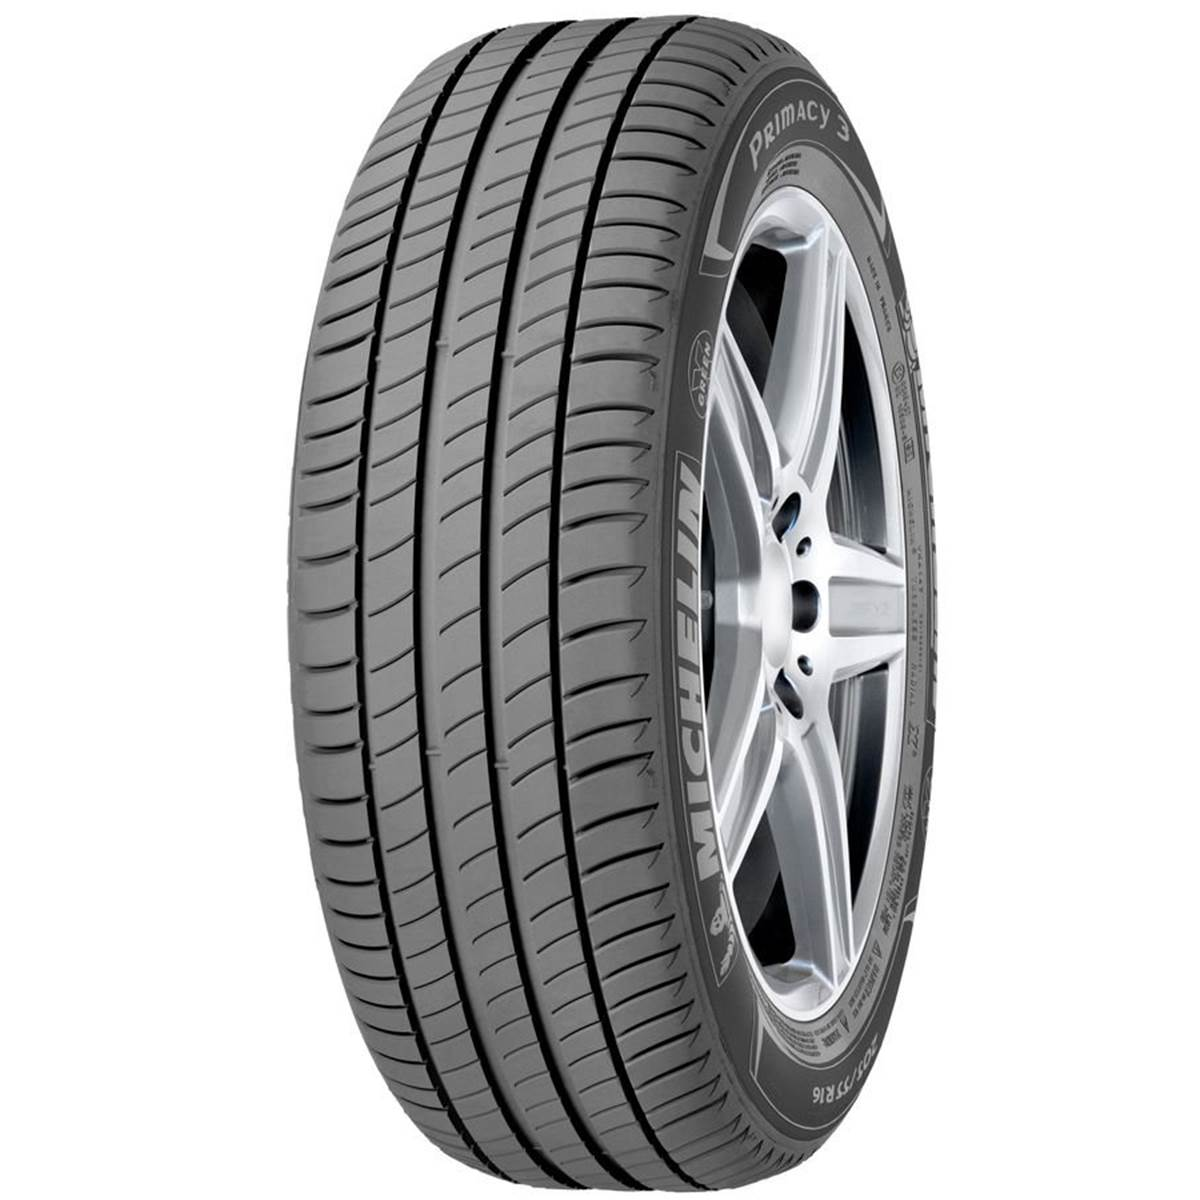 Pneu Michelin 225/55R17 97W Primacy 3